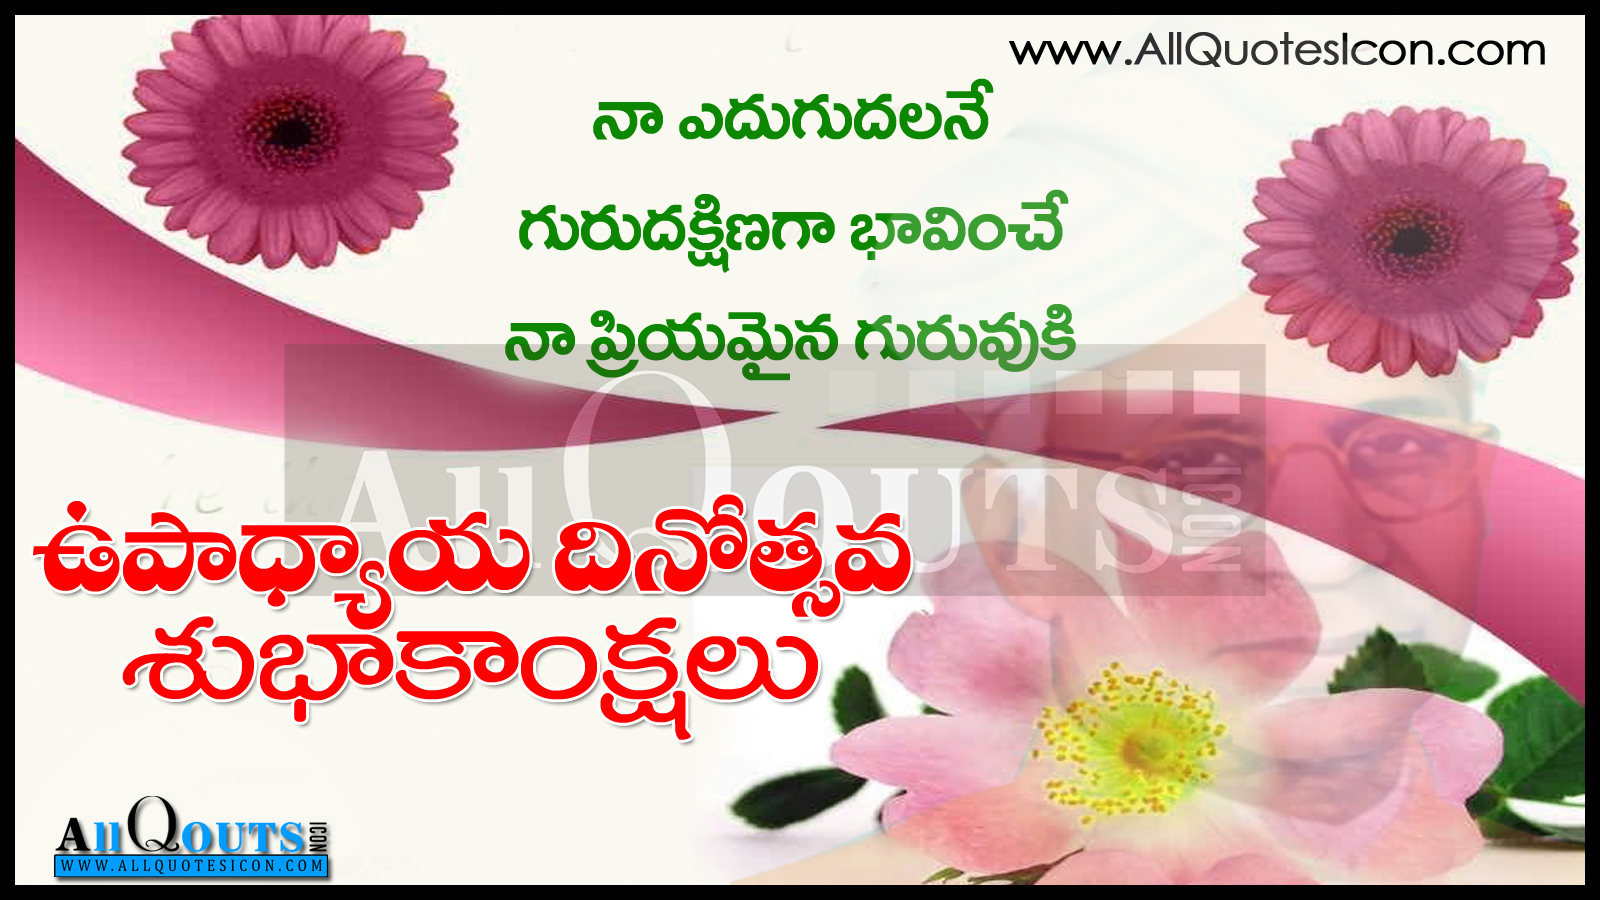 Happy teachers day greetins in telugu hd wallpapers 20 happy best telugu teachers day quotes for facebookhappy teachers day greetings in teluguhappy kristyandbryce Choice Image